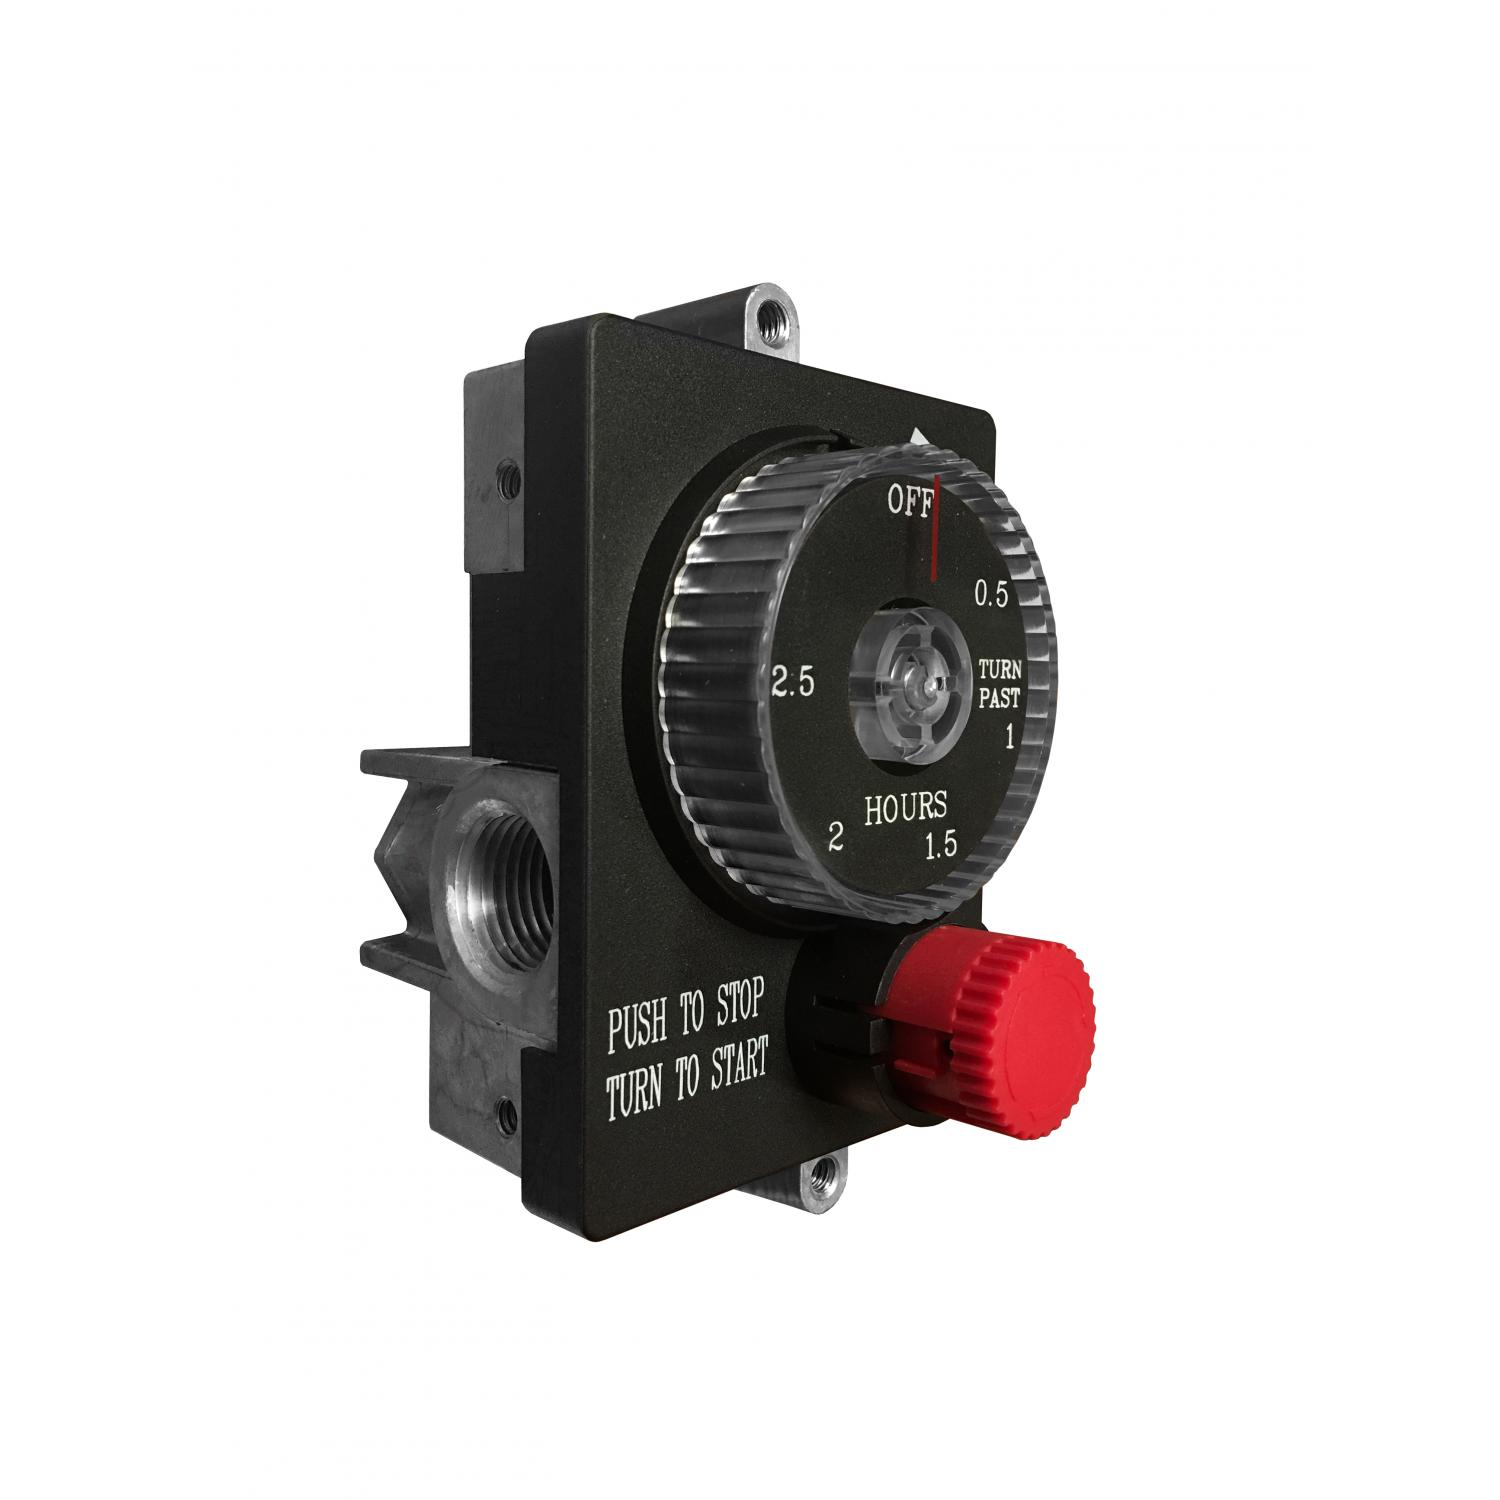 Automatic 2.5 Hour Timer Gas Safety Shut-Off Valve With Emergency Stop - Skytech ESTOP2-5H